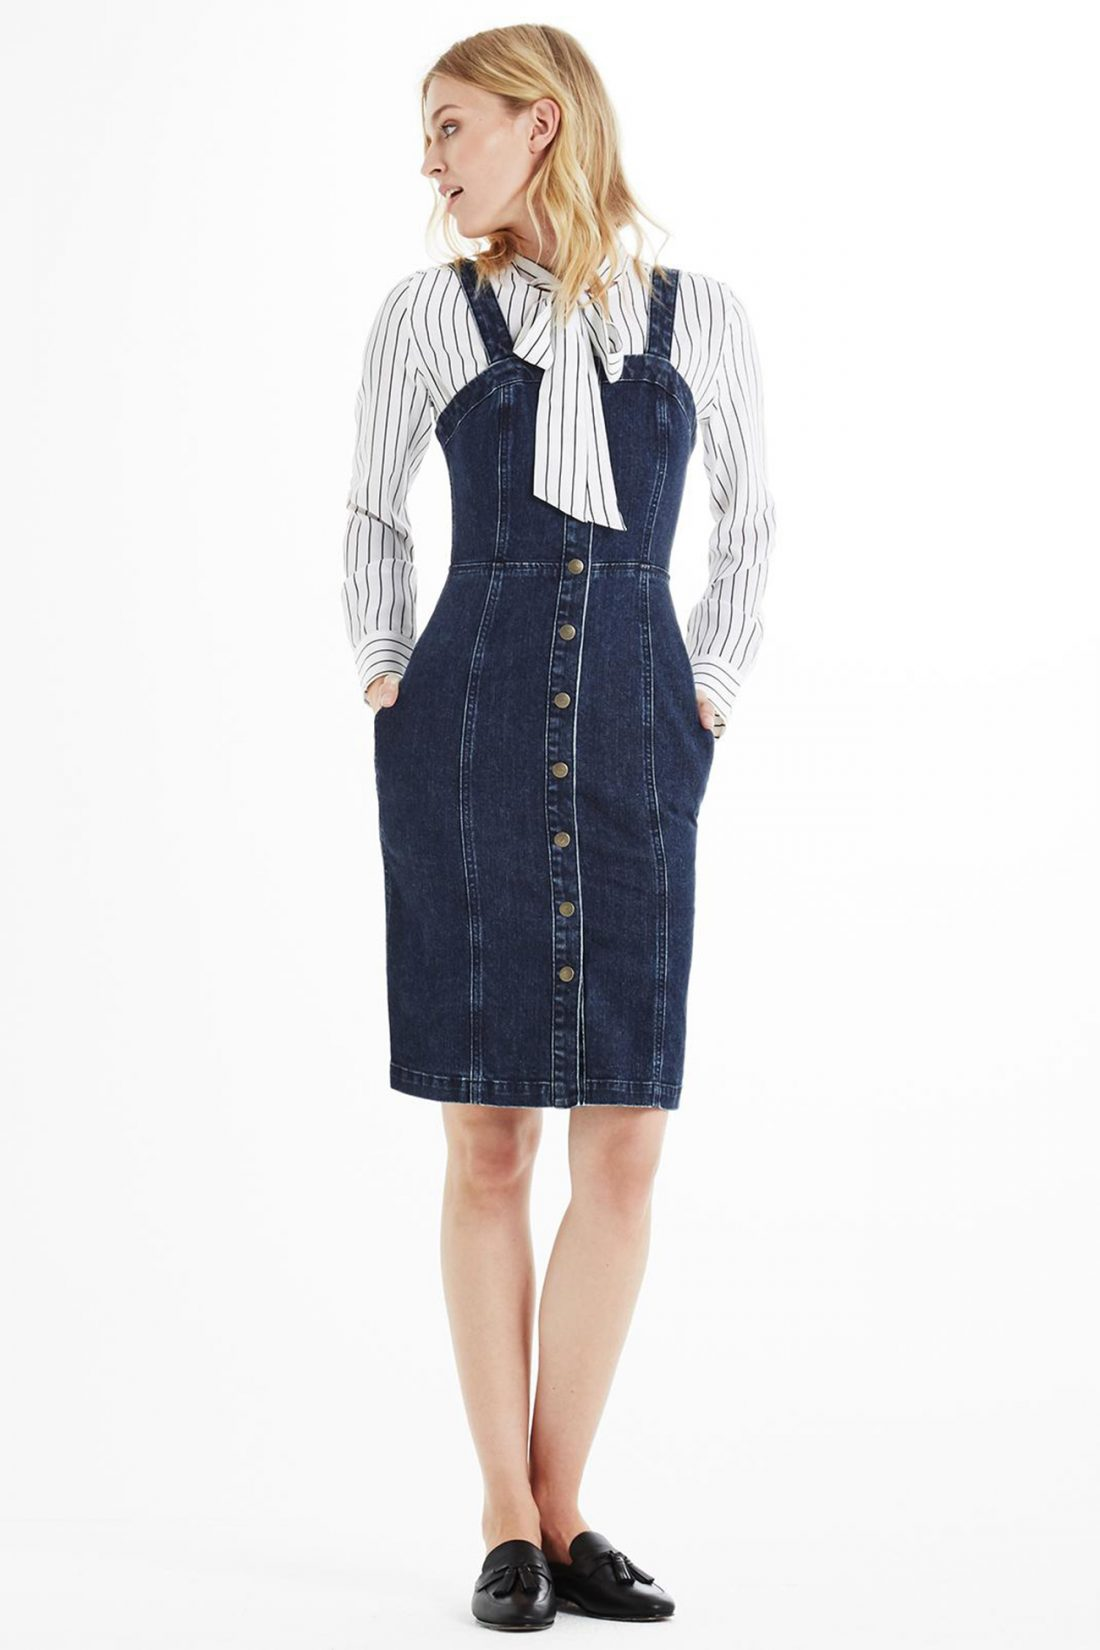 Back to school fashion: Denim Dress